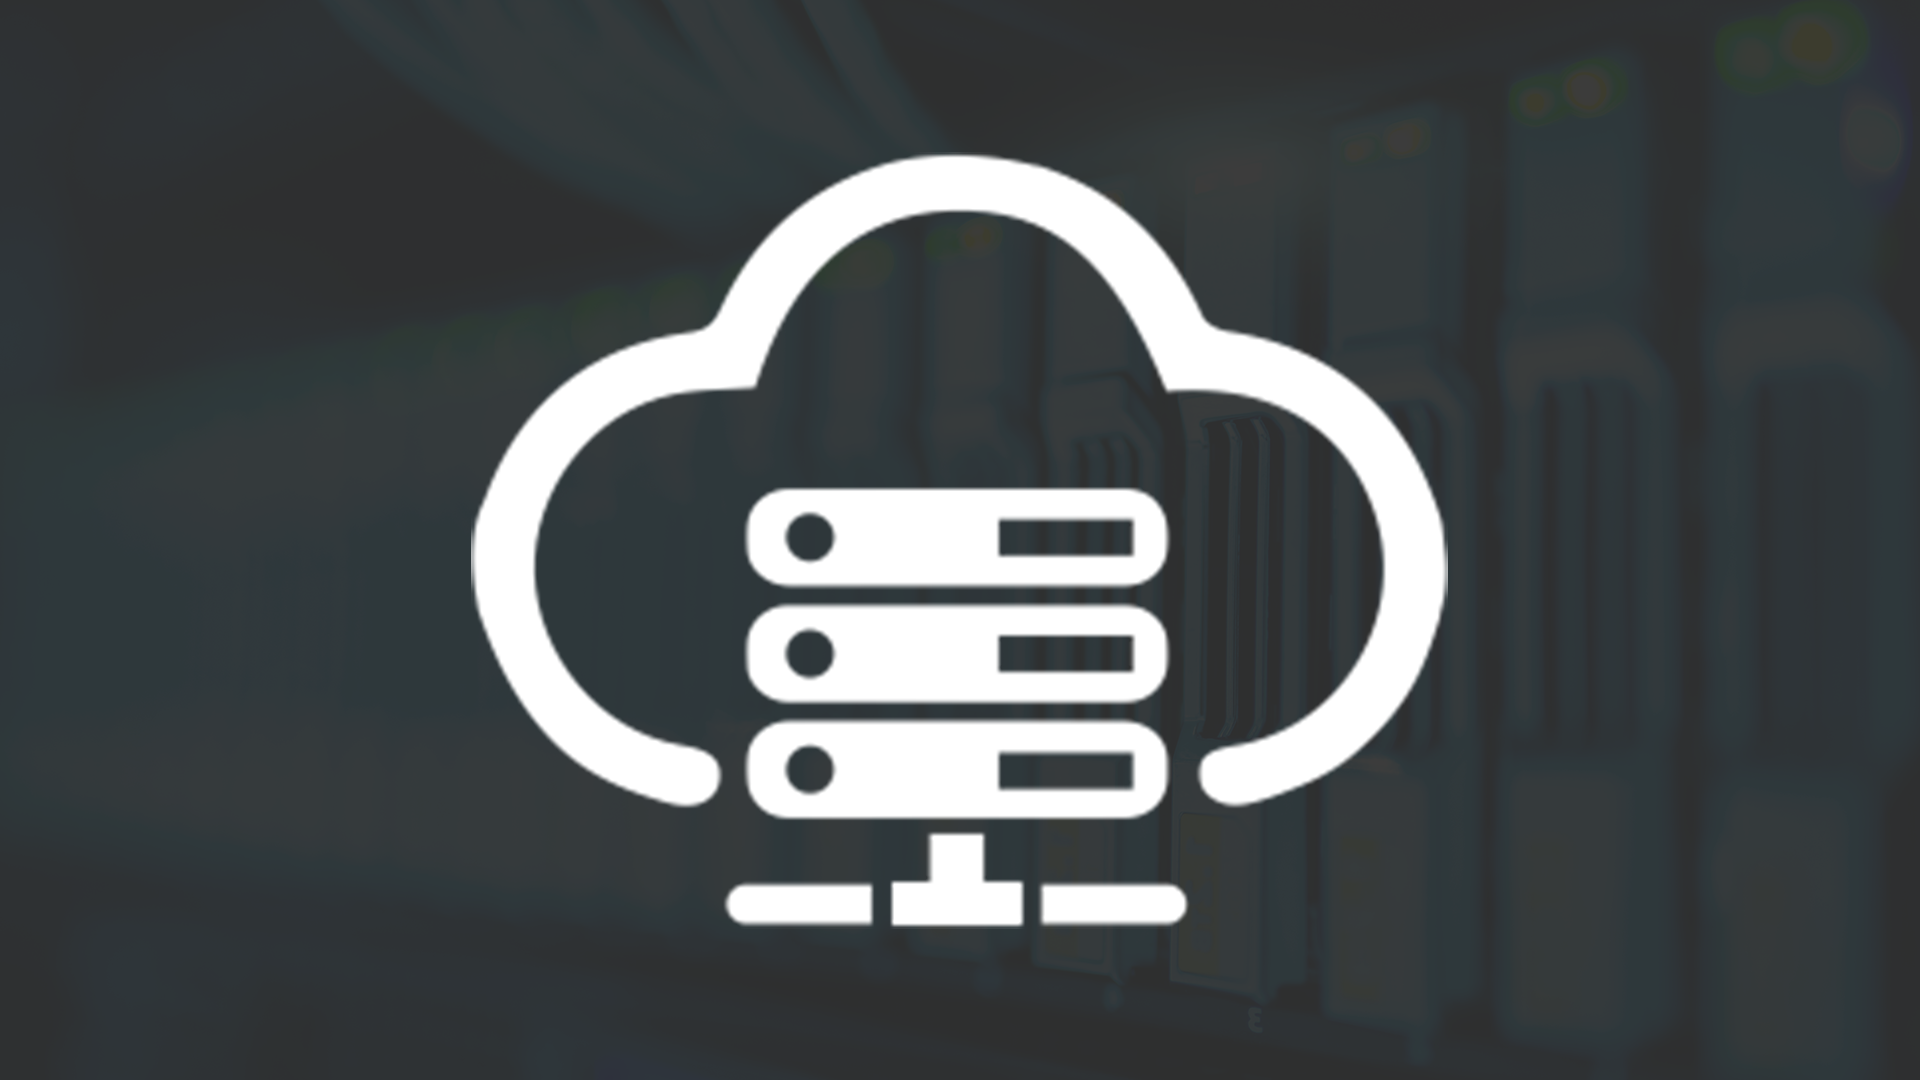 for reliable and affordable cloud vps hosting services near me